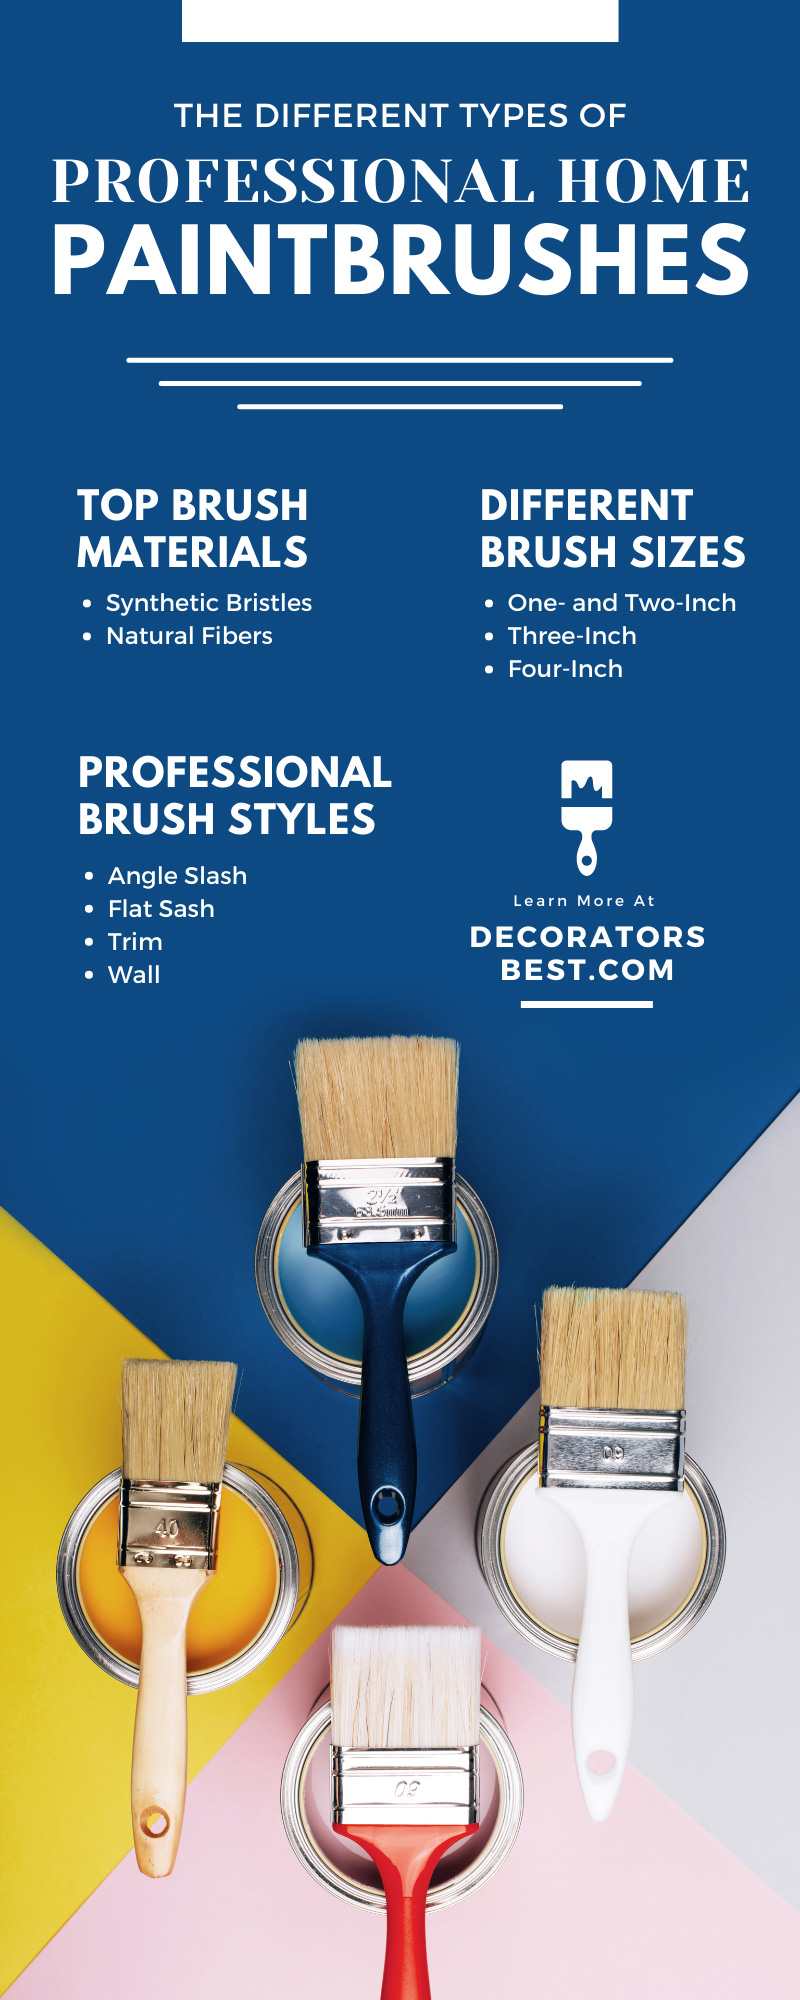 The Different Types of Professional Home Paintbrushes